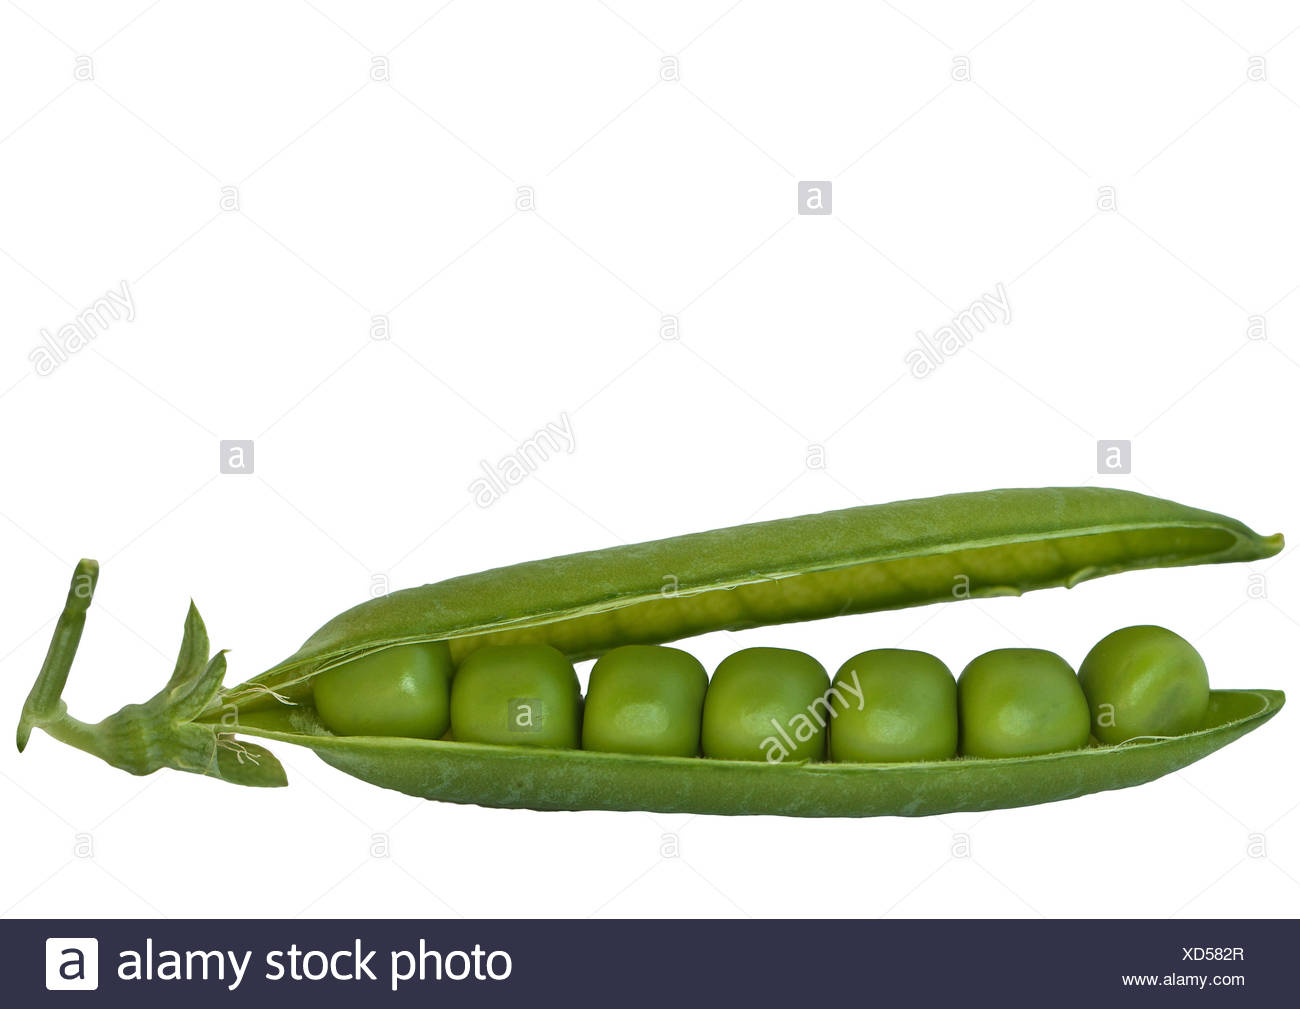 Green Peapod Stock Photos & Green Peapod Stock Images - Alamy